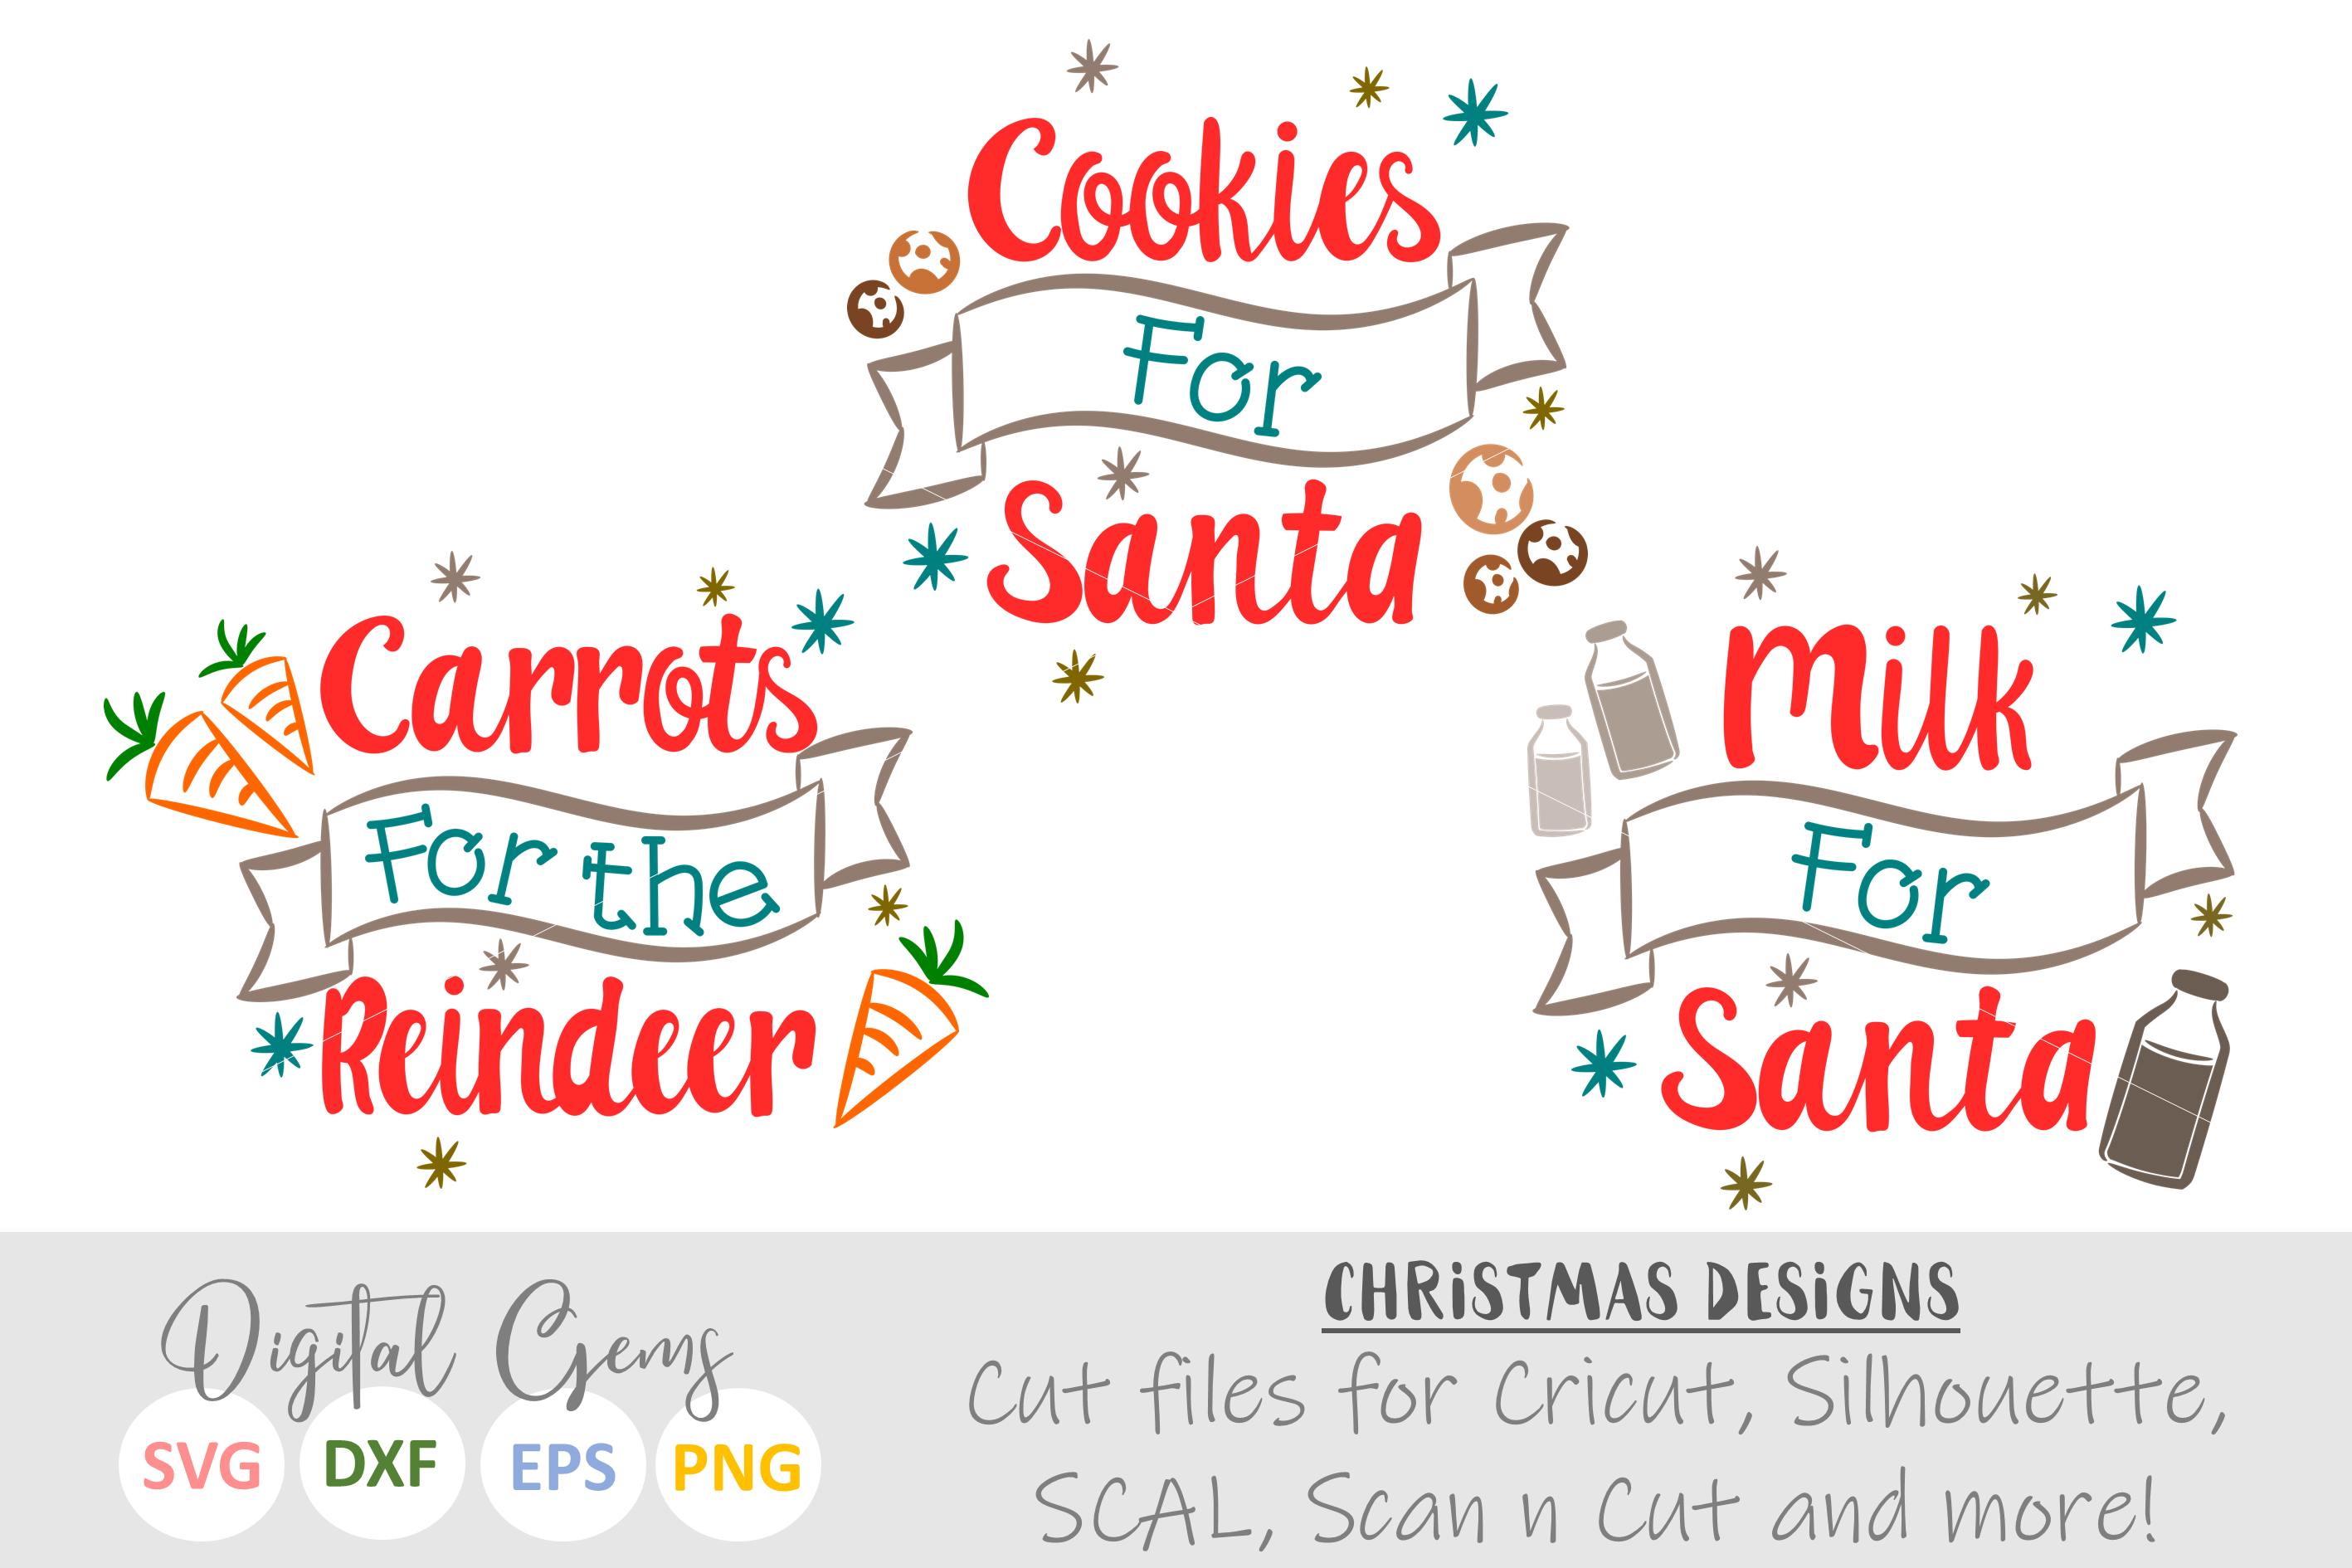 Cookies and Milk for Santa and Carrots for the Reindeer example image 2